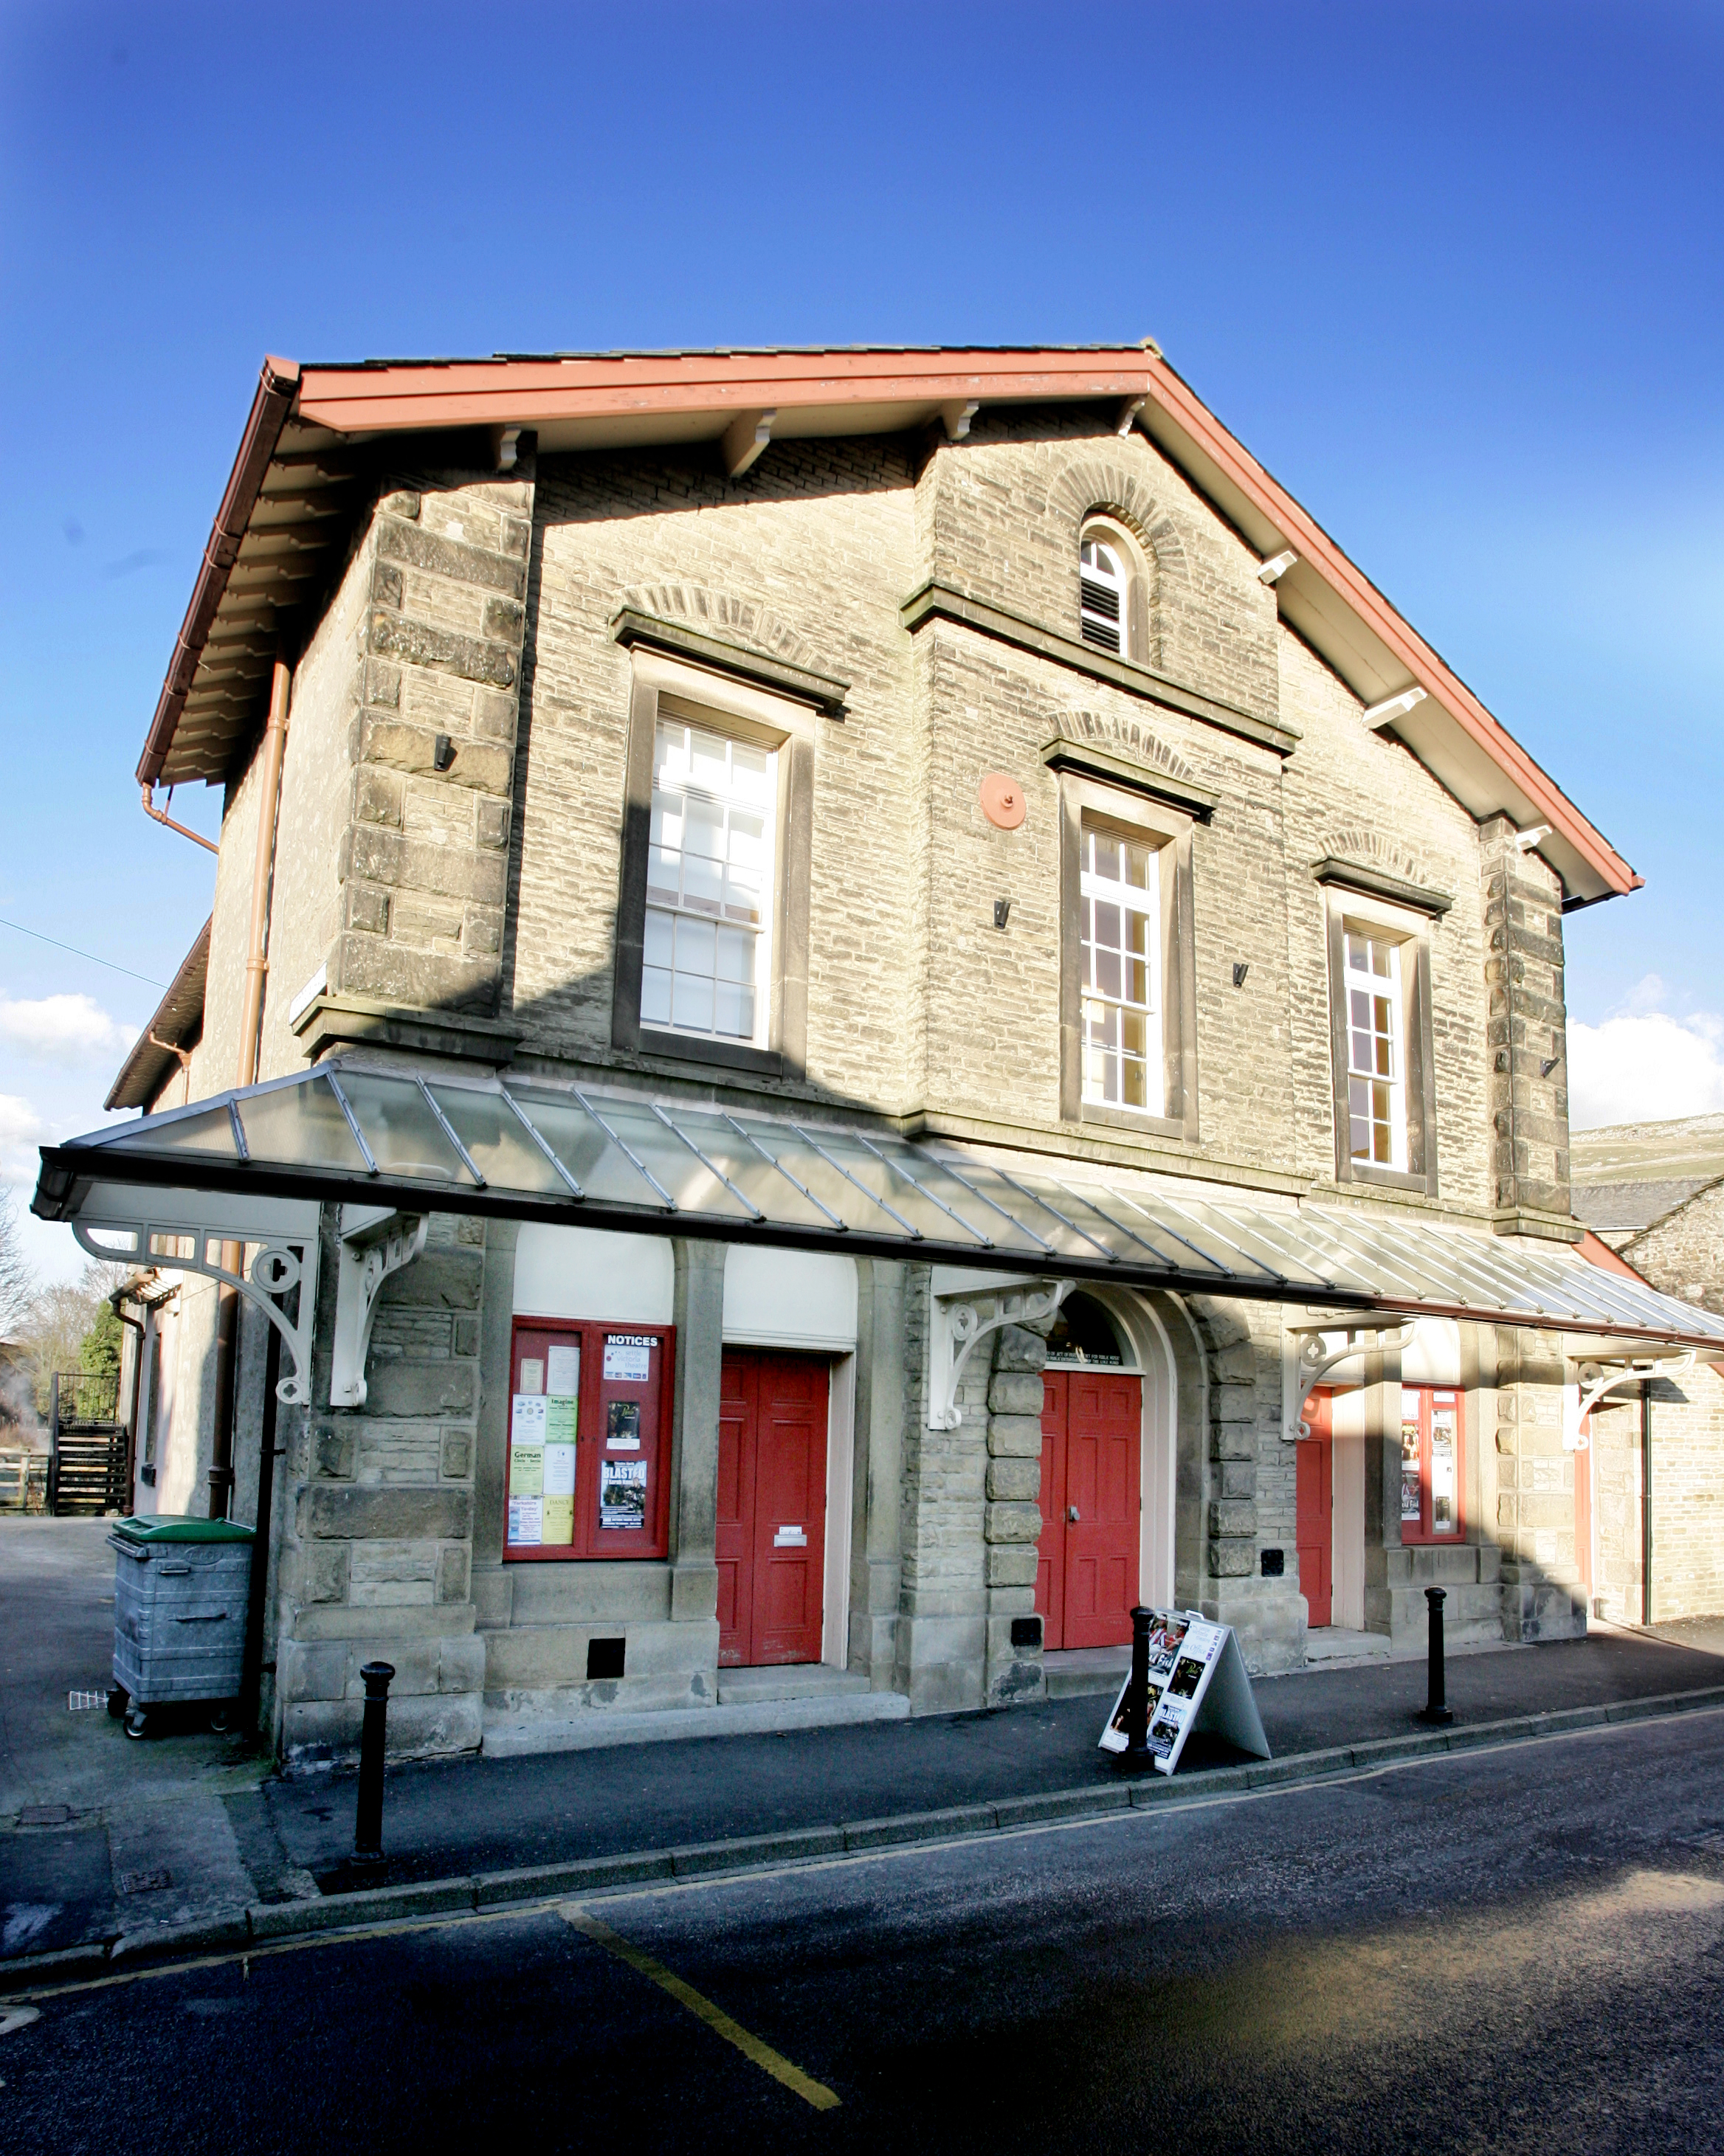 One of the sessions will be at the Victoria Hall, Settle